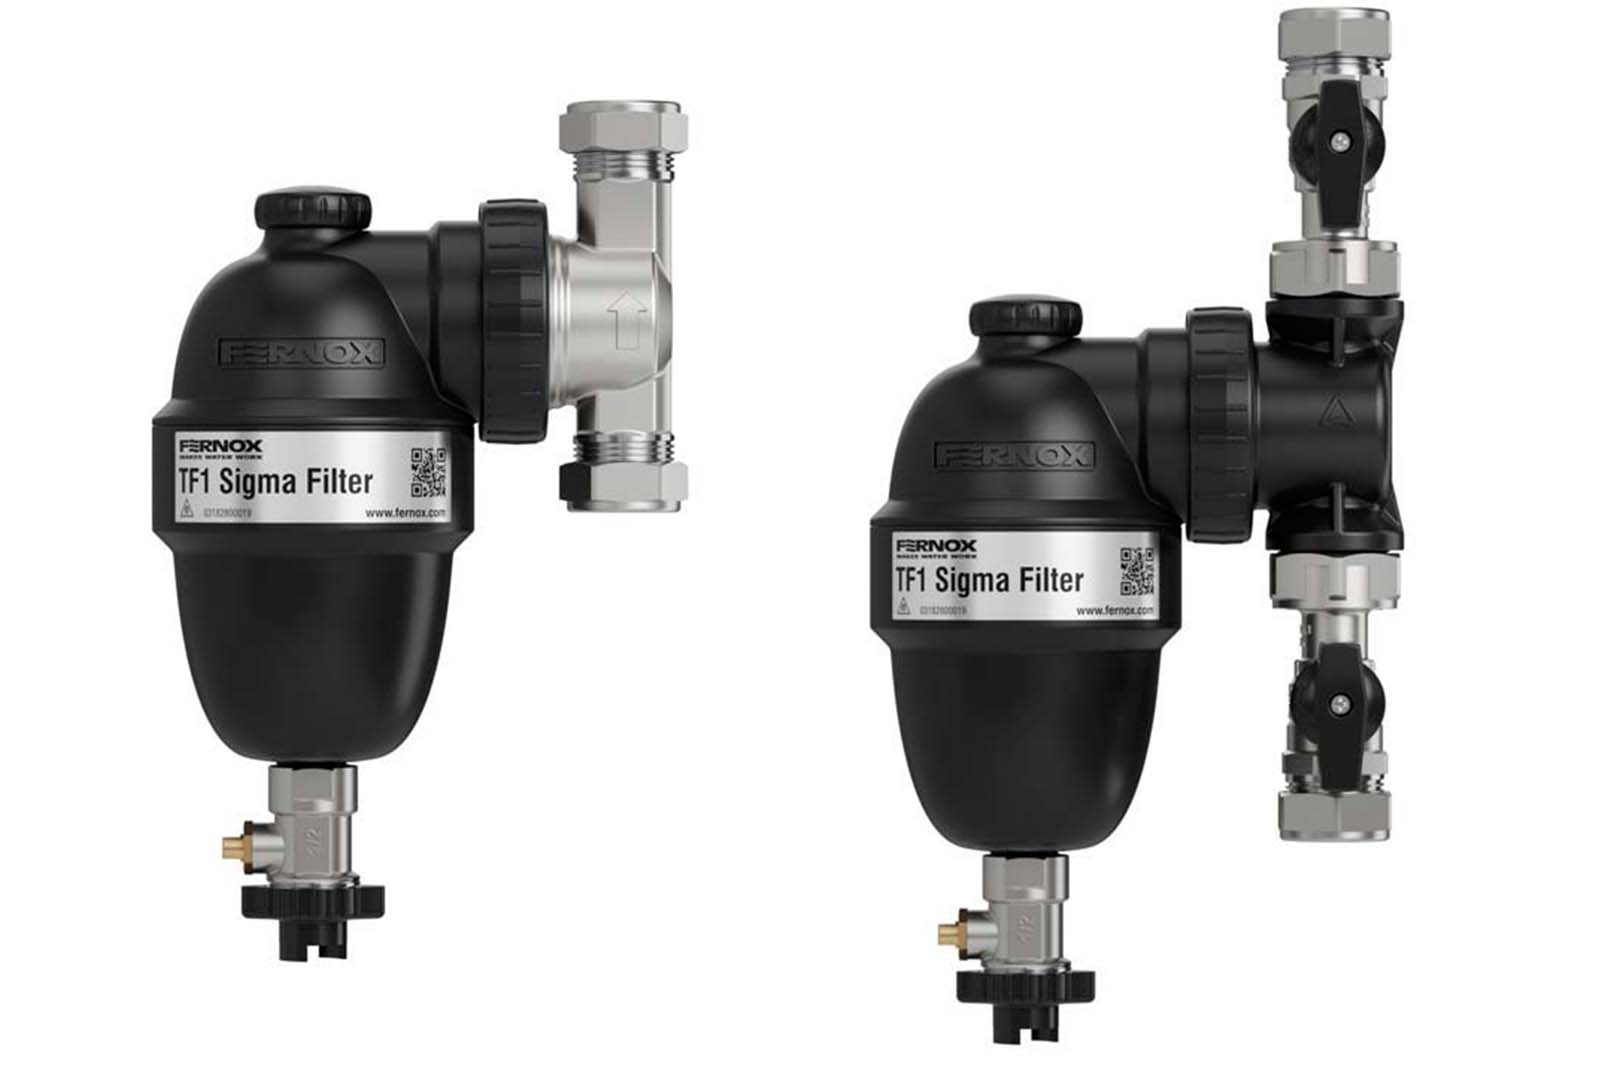 3 Fernox Filters for grabs